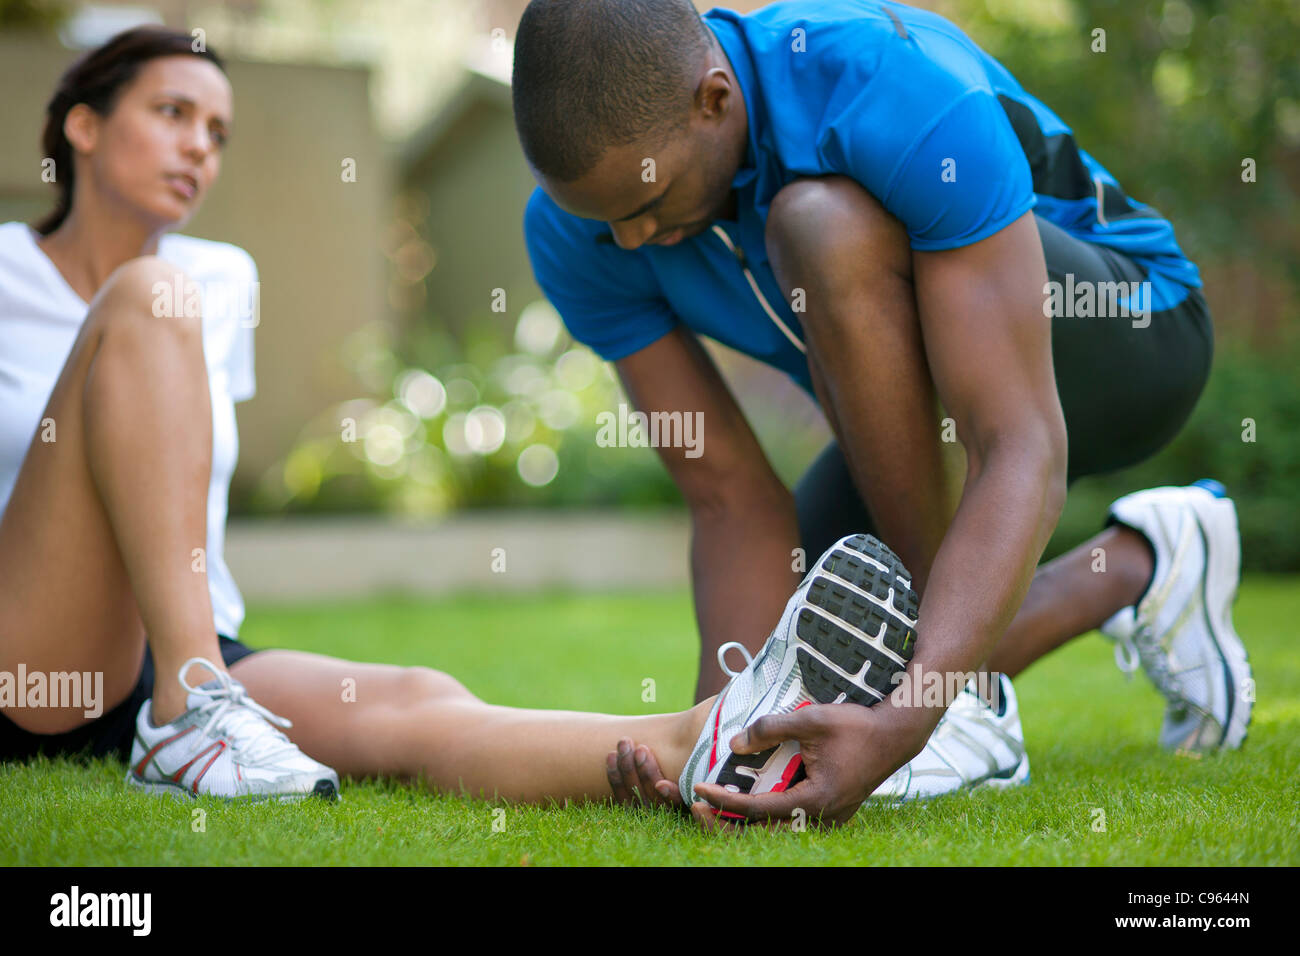 Ankle injury. Female runner with an ankle injury. - Stock Image